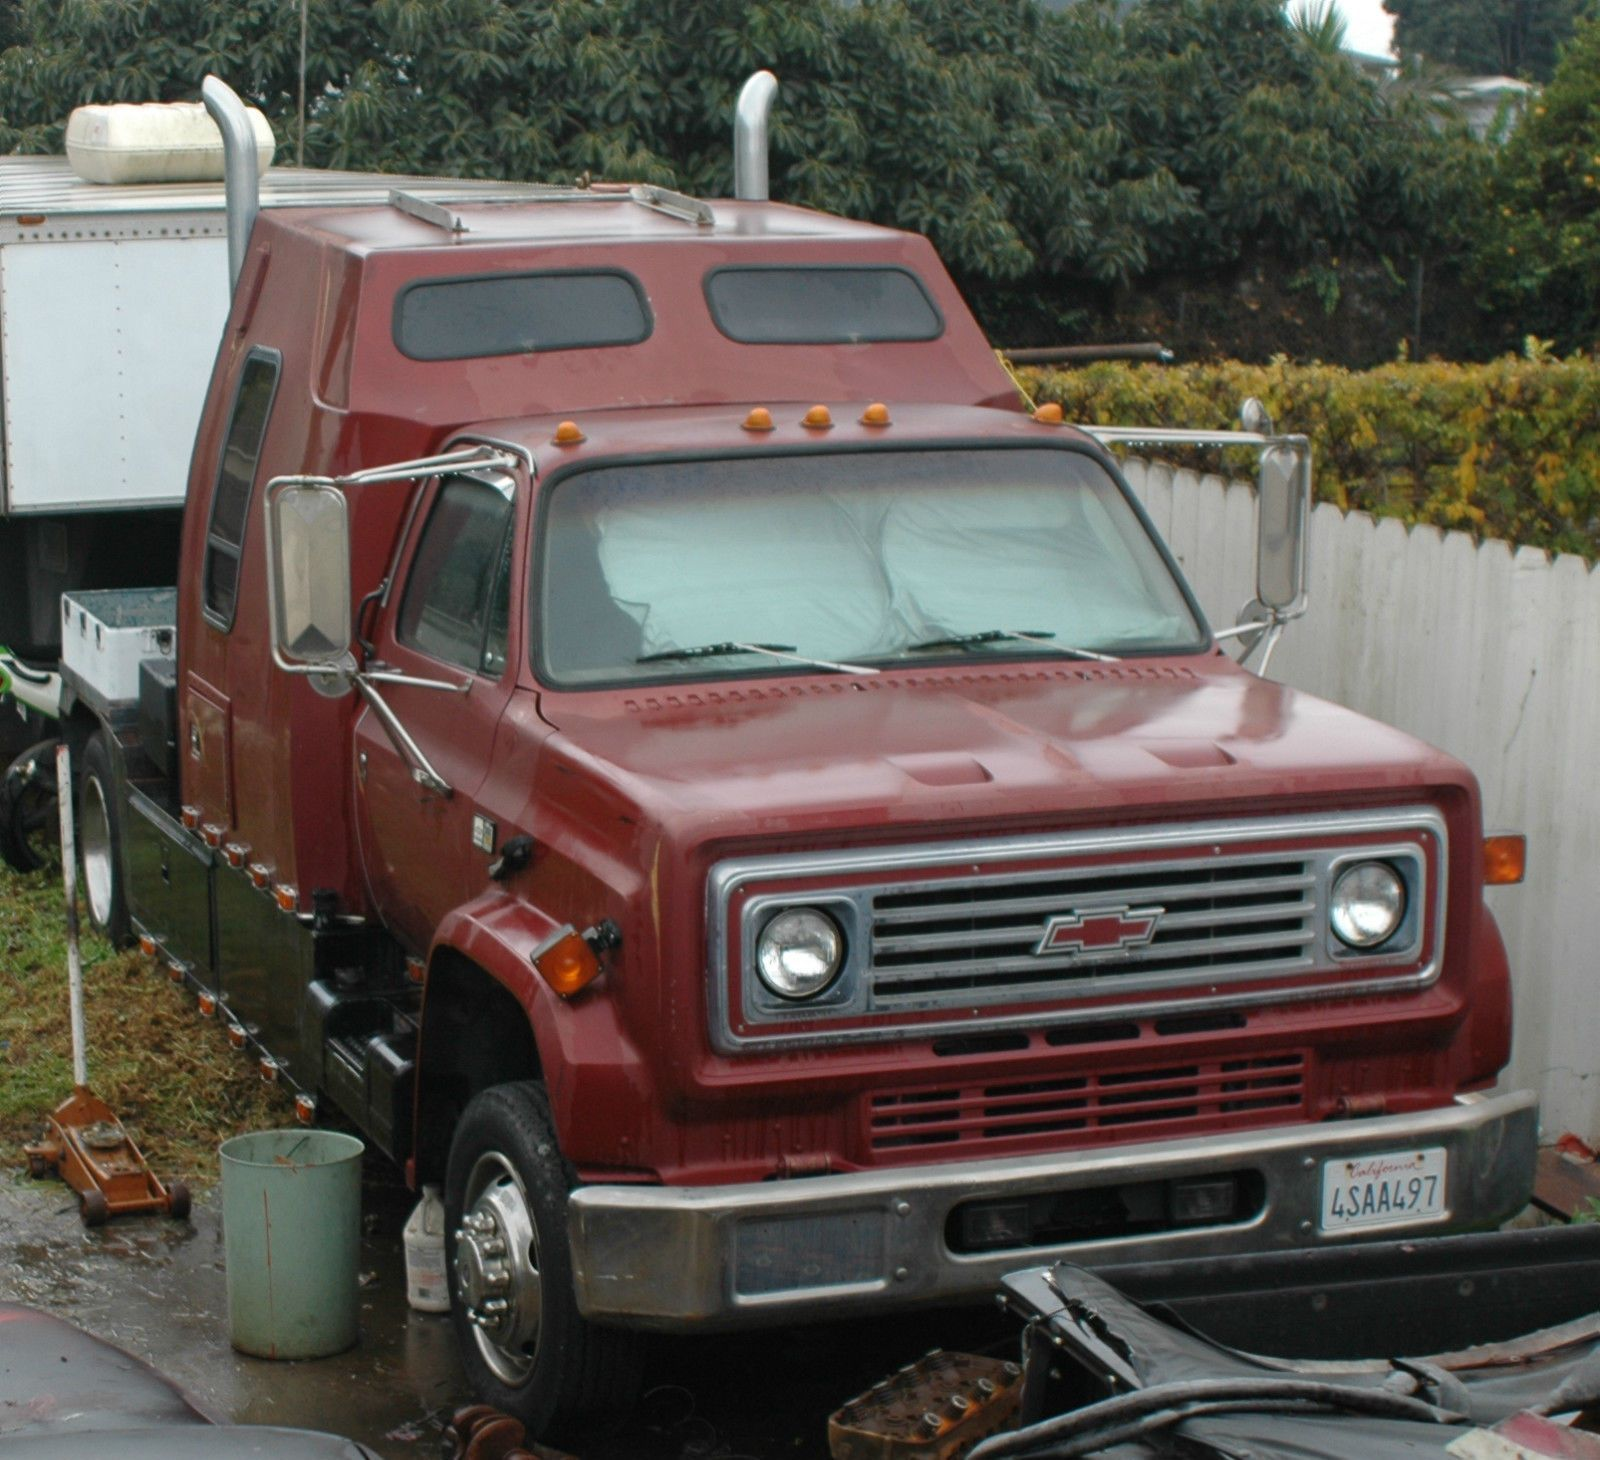 1988 chevrolet kodiak turbo diesel sleeper cab this a more powerfull progression from the aussie